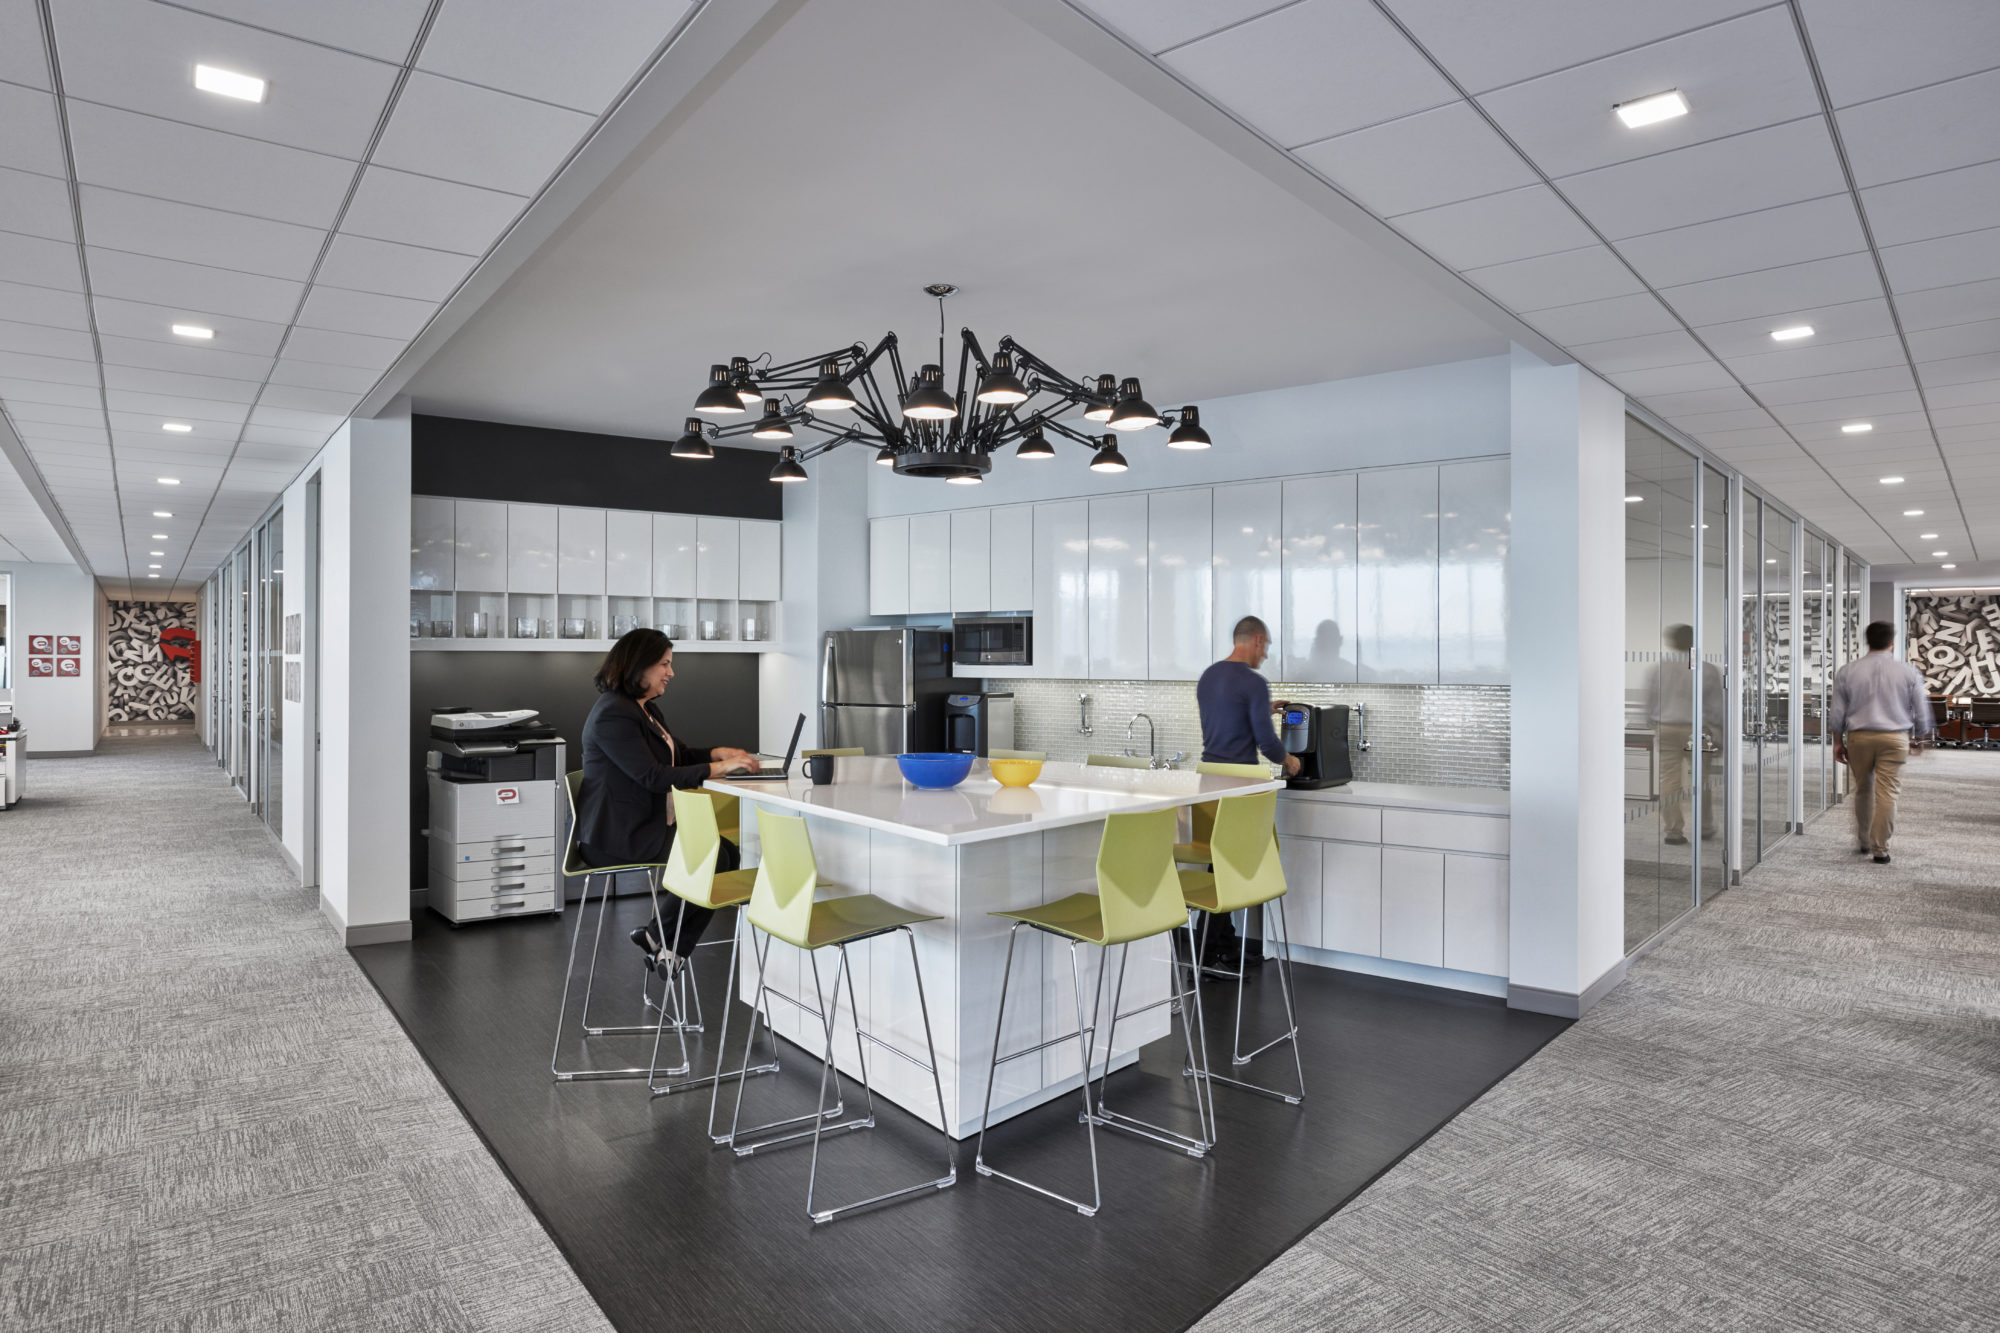 Office kitchenette with a desk lamp chandelier and green bar seats where a woman is working on her laptop as a man makes coffee. MEP provided by 2L Engineering.